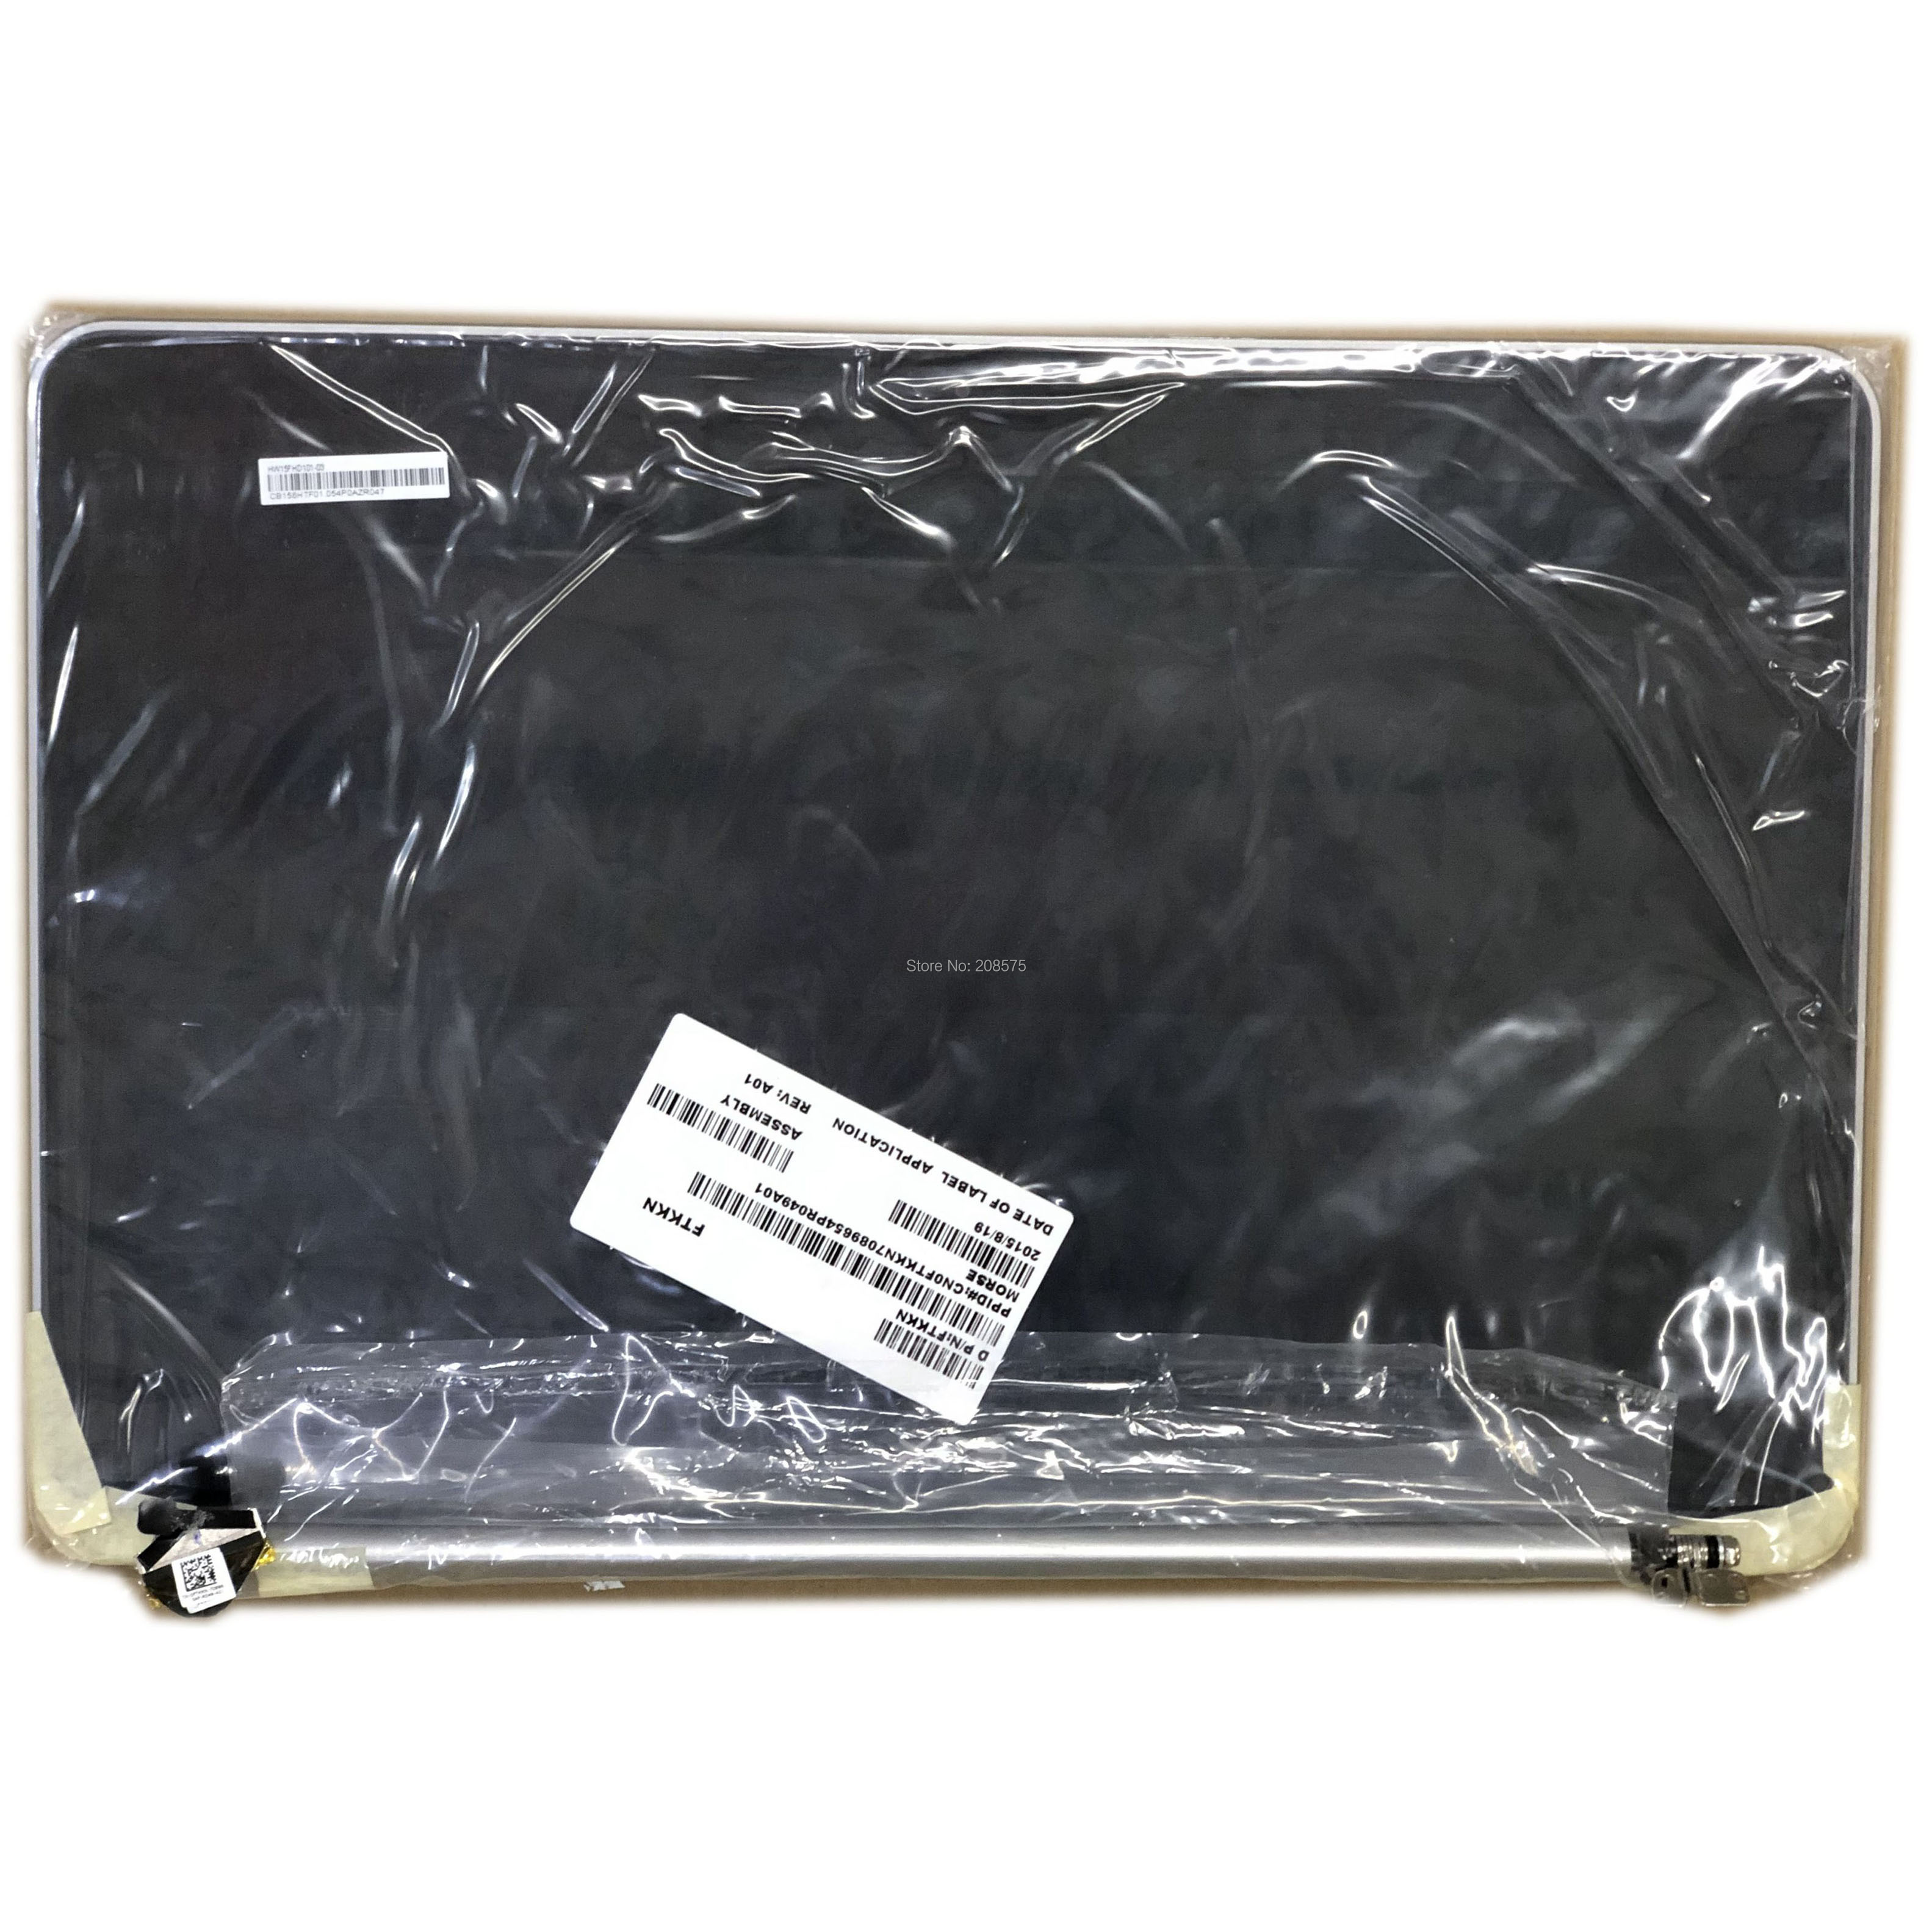 HW15FHD101-03 CB156HTF01 LCD Screen Assembly Complete Upper Half Replacement Parts For DELL XPS 15 L521X PN FTKKN Silver